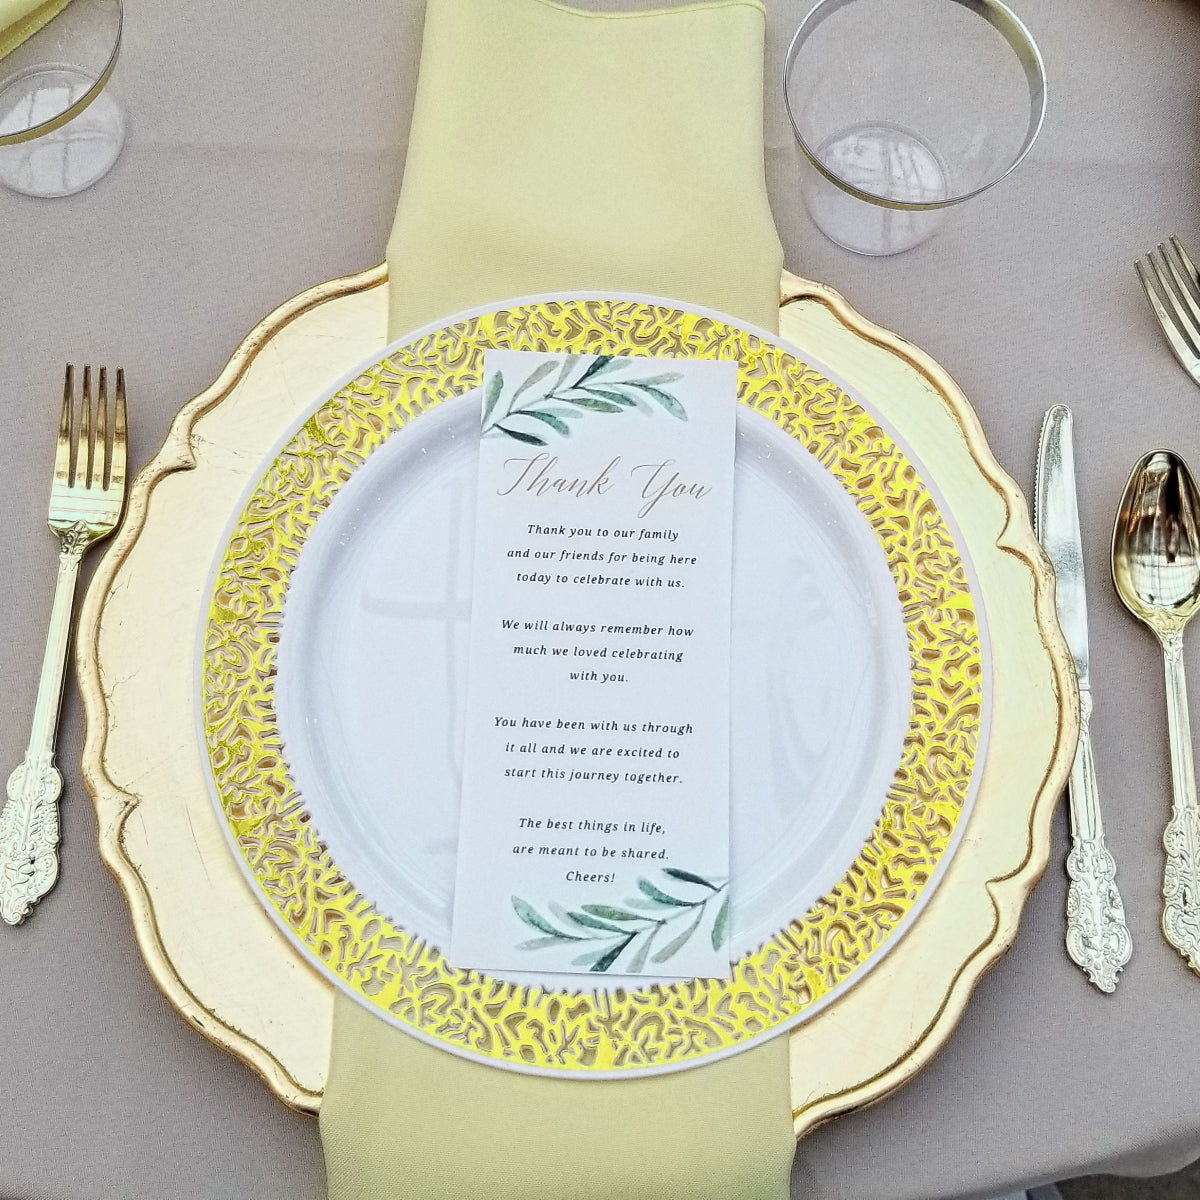 Place_Setting_Details.jpg